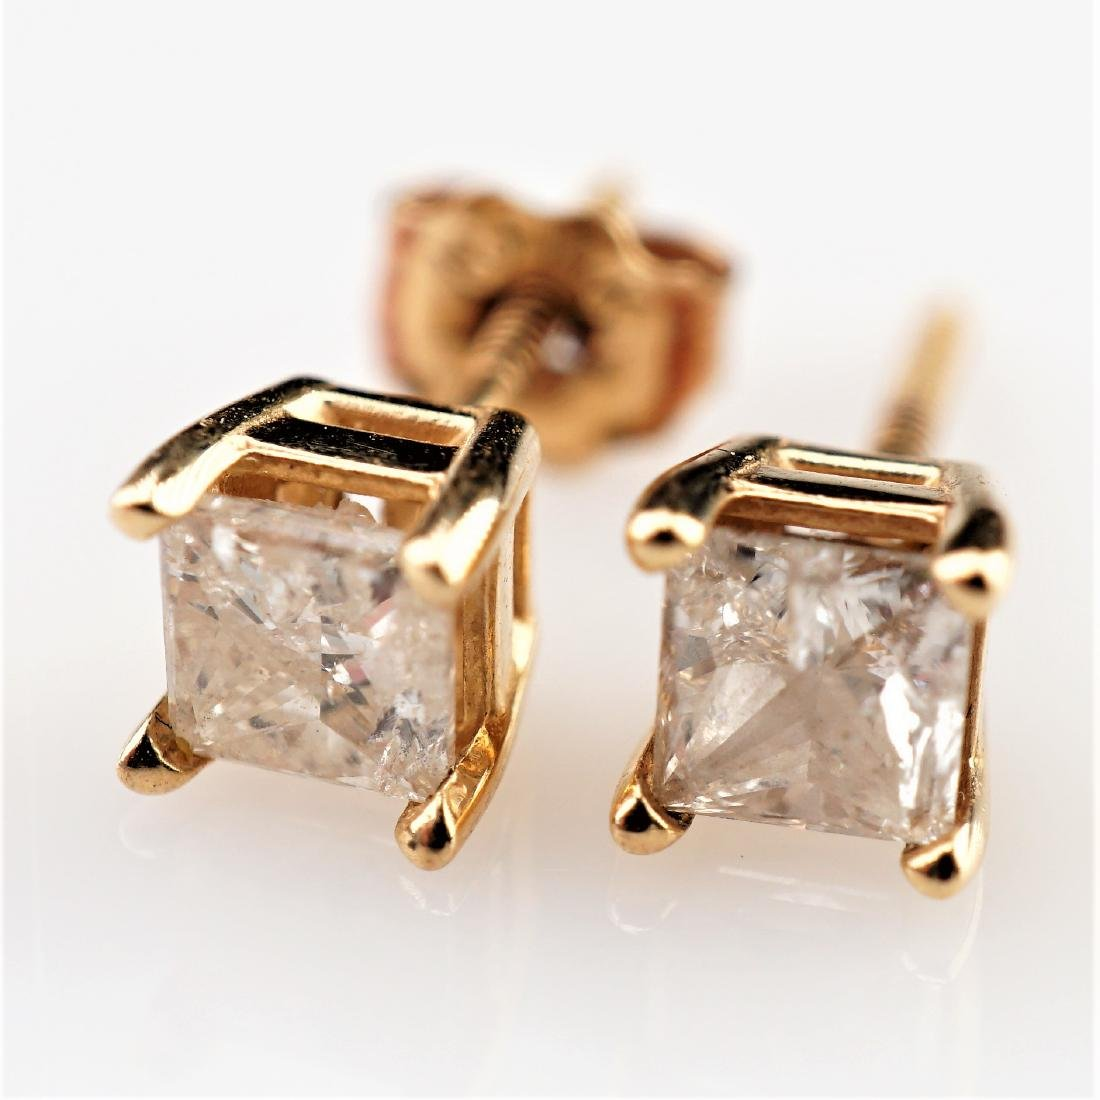 14k YG .50 CTTW White Diamond Stud Earrings